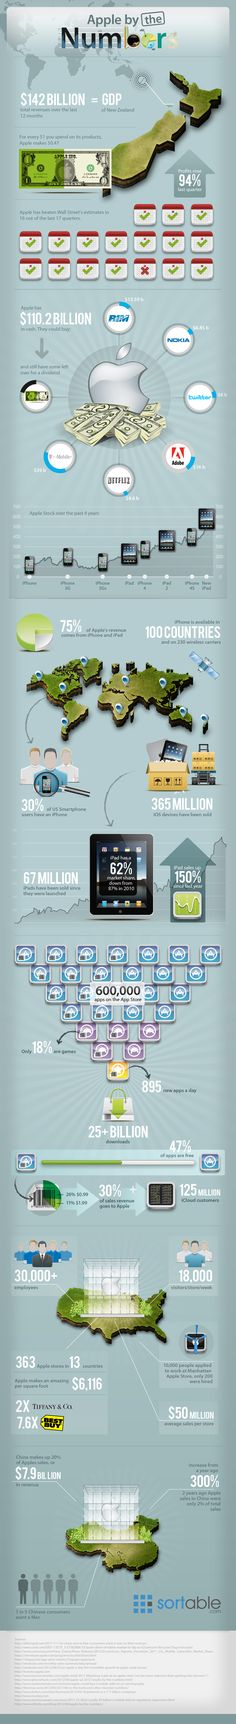 Apple by numbers: